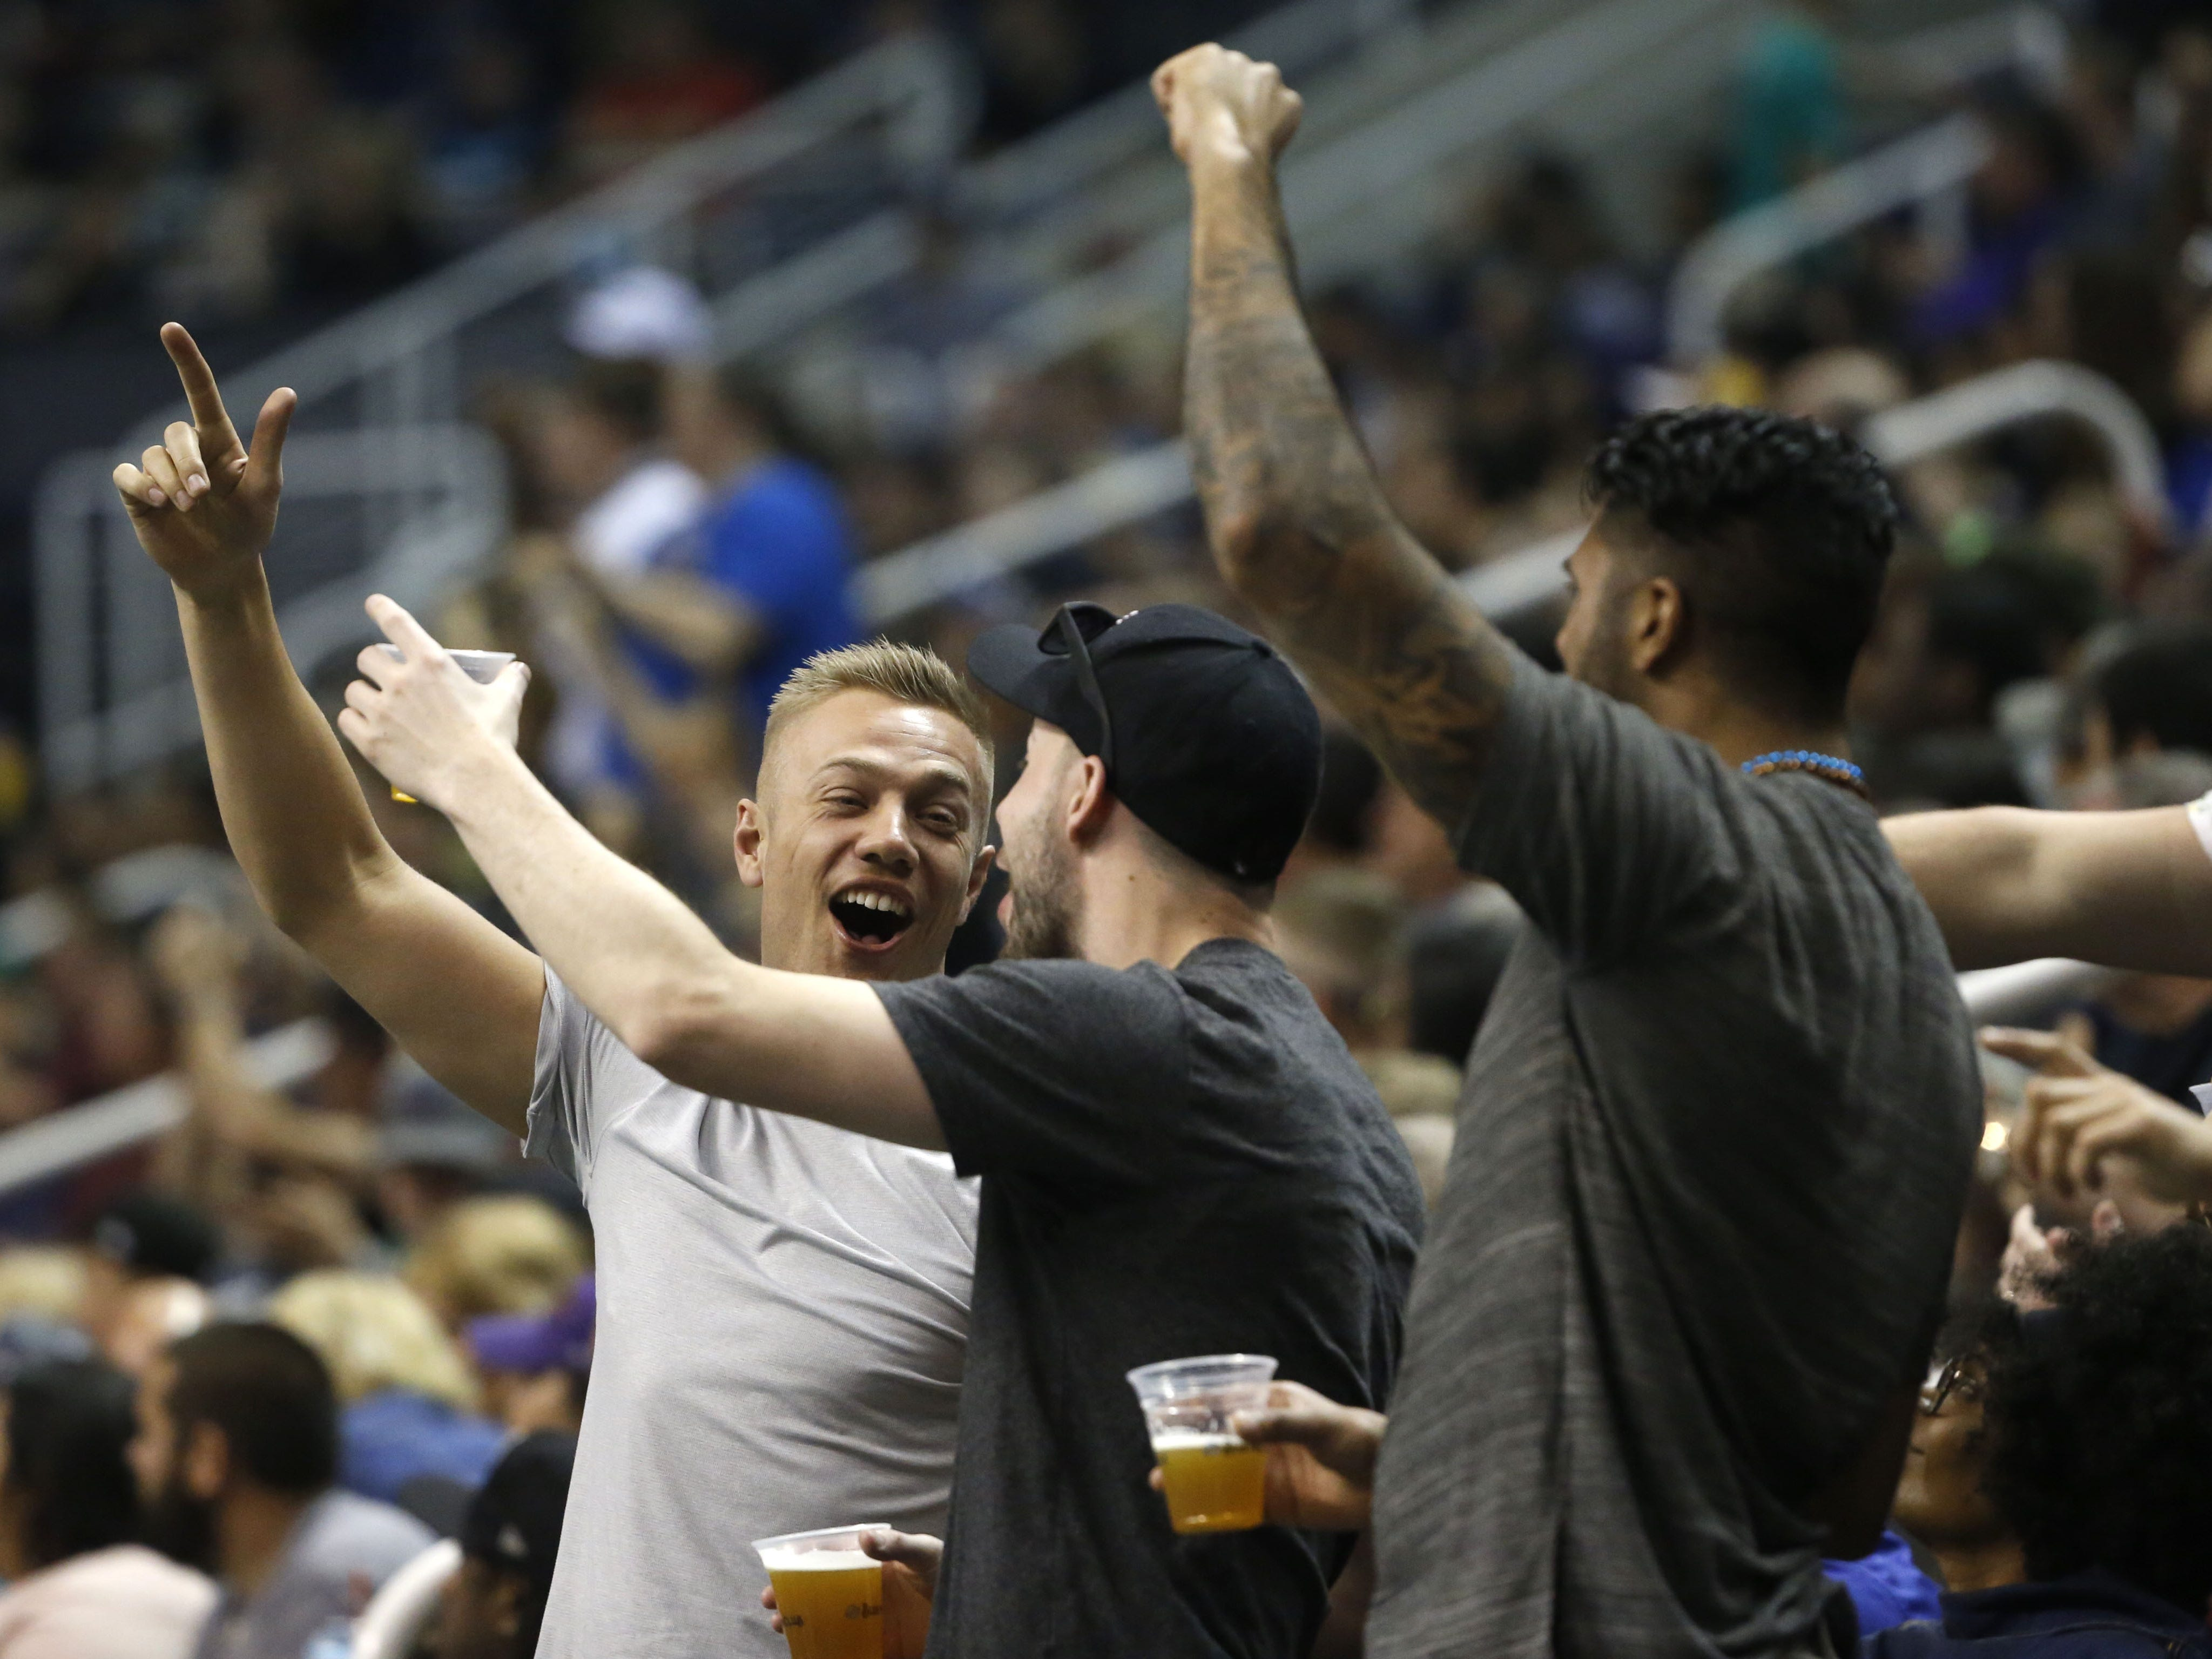 Rattlers fans react to a blocked field goal and touchdown during the first half against the Sugar Skulls at Talking Stick Resort Arena in Phoenix, Ariz. on March 16, 2019.